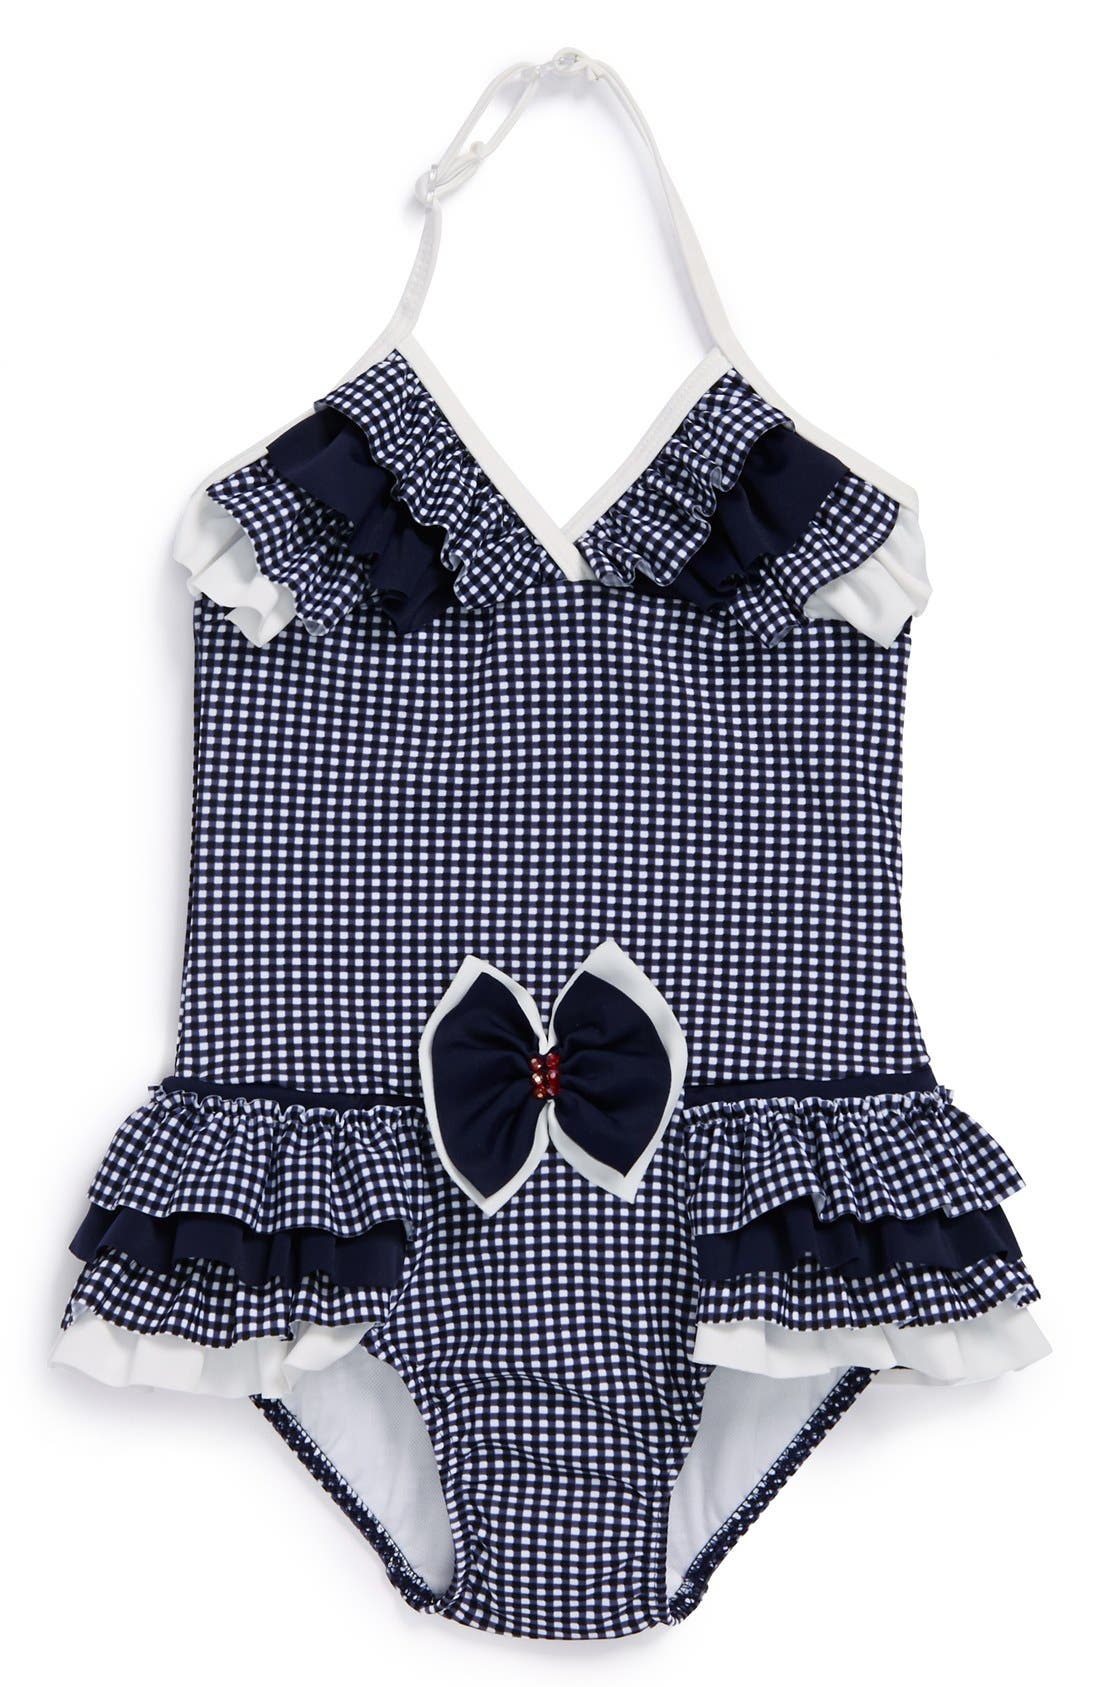 Alternate Image 1 Selected - Isobella & Chloe 'Simply Nautical' One-Piece Swimsuit (Toddler Girls)